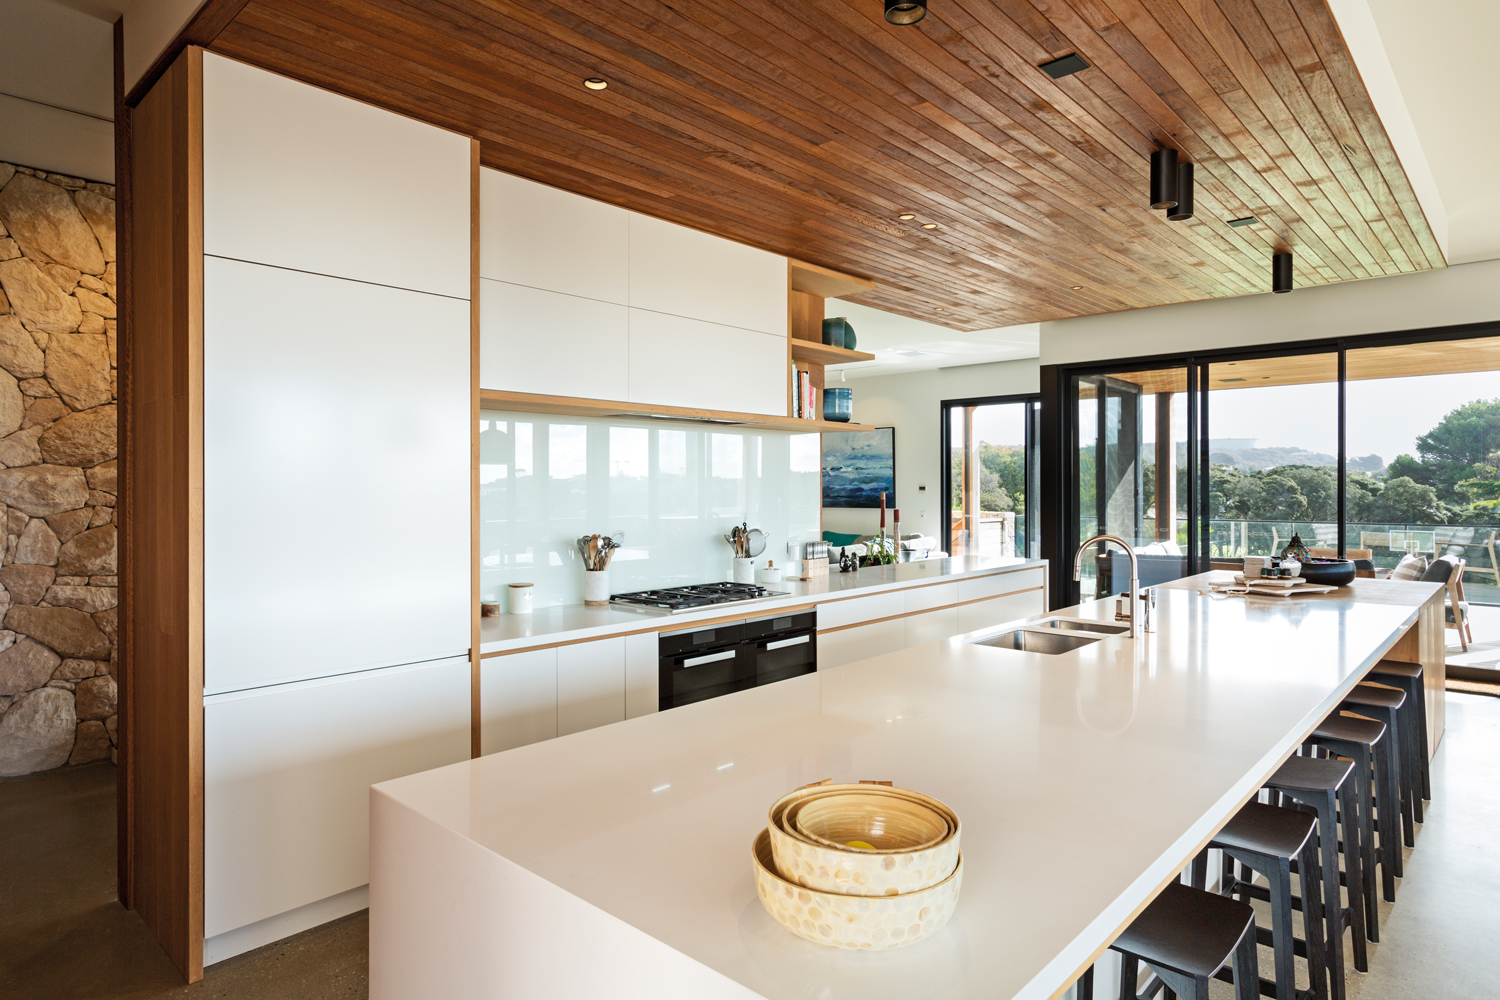 This modern minimalist kitchen blends natural light with timber features